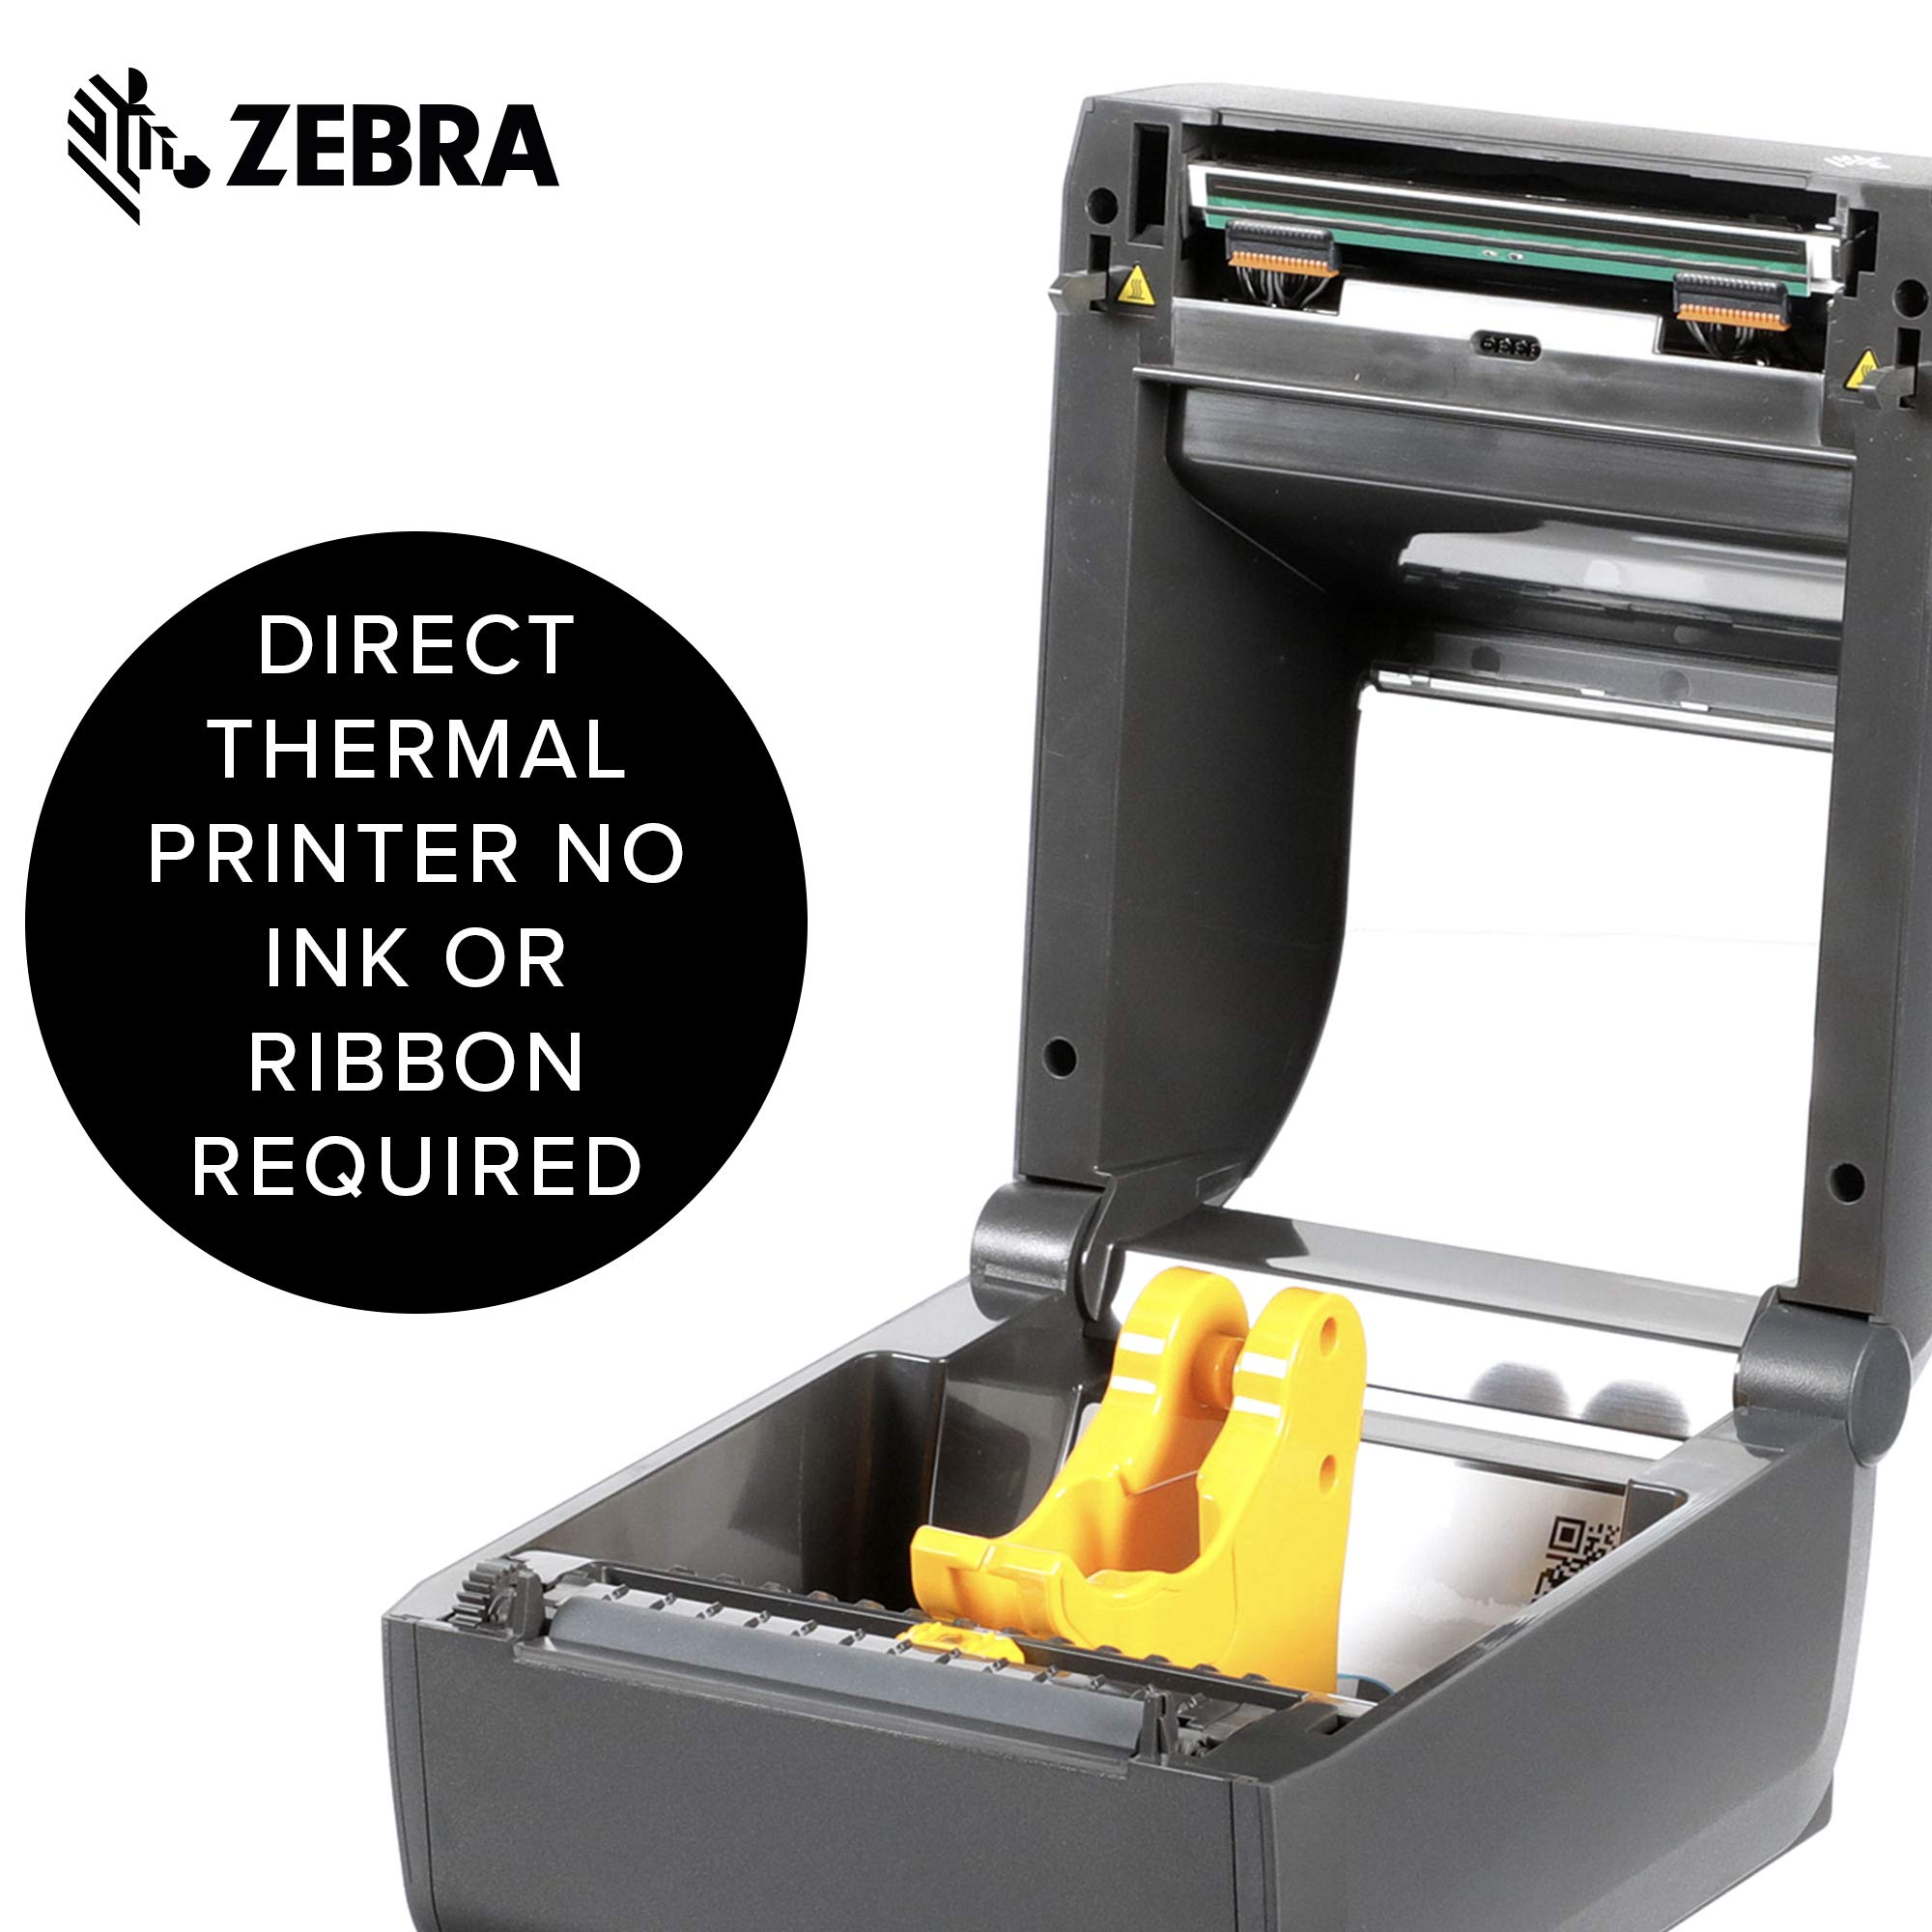 Zebra - ZD420d Direct Thermal Desktop Printer for Labels and Barcodes - Print Width 4 in - 300 dpi - Interface: WiFi, Bluetooth, USB - ZD42043-D01W01EZ by Zebra Technologies (Image #4)